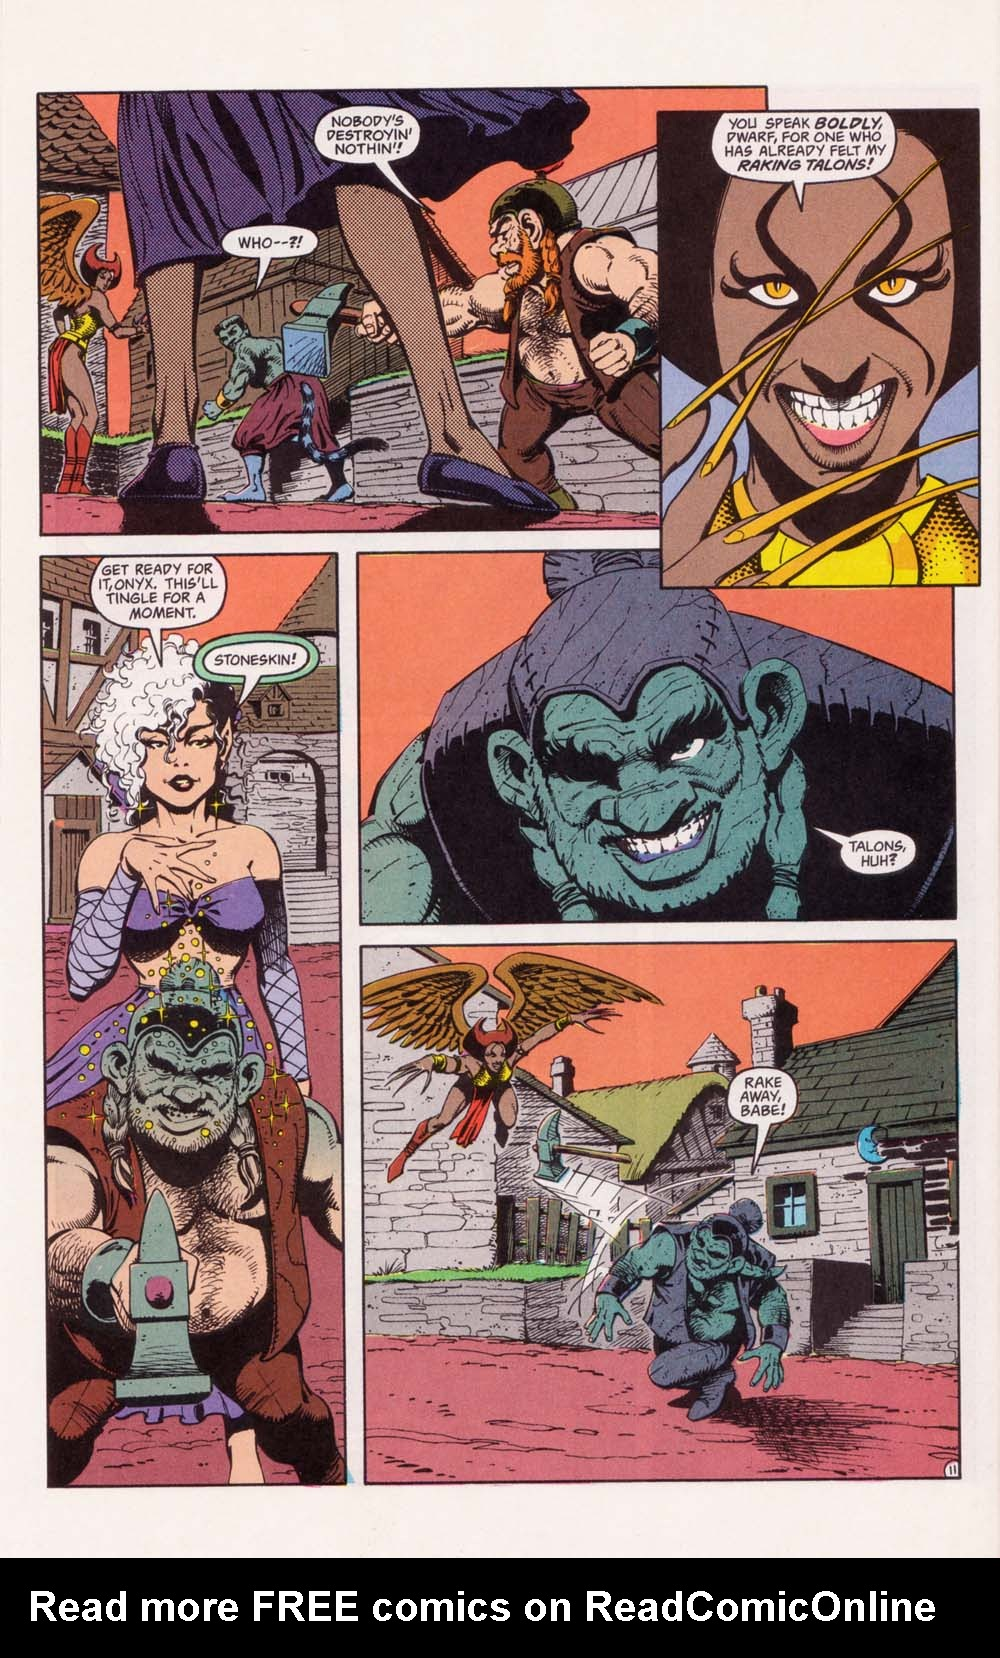 Read online Advanced Dungeons & Dragons comic -  Issue #33 - 11